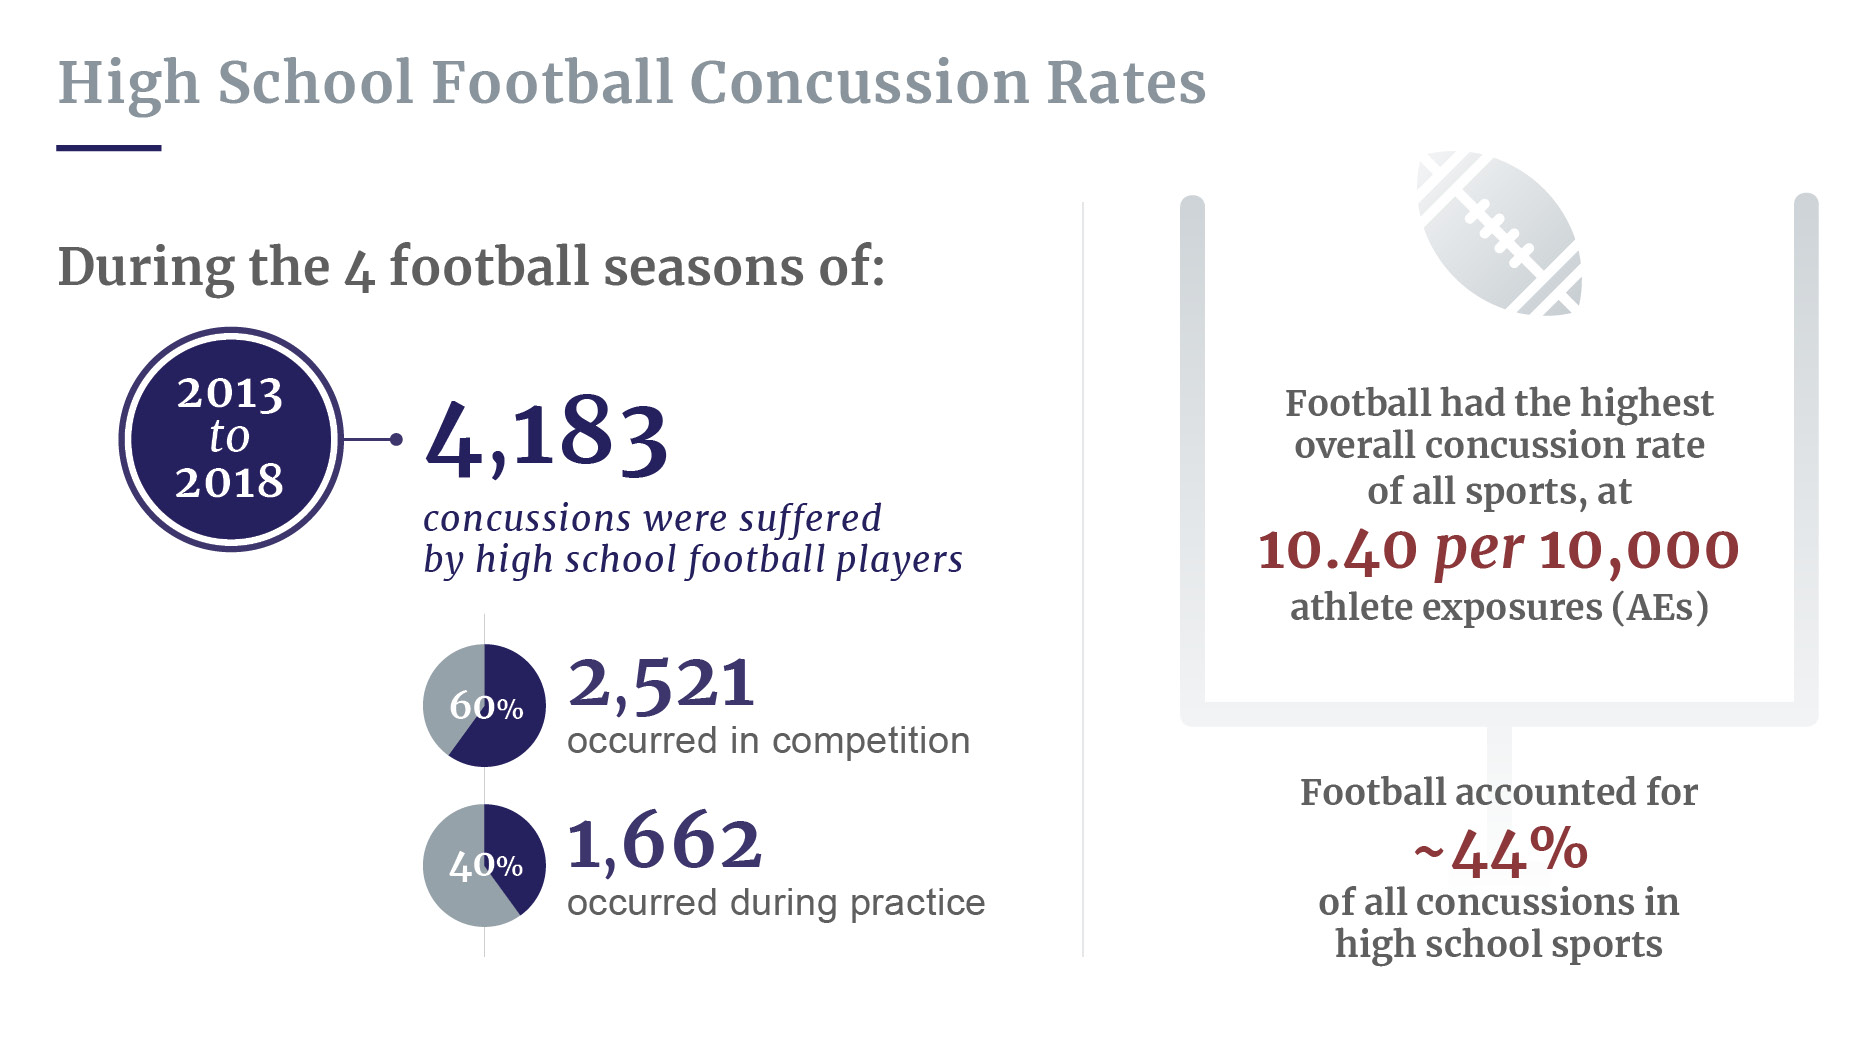 HS football concussion rates